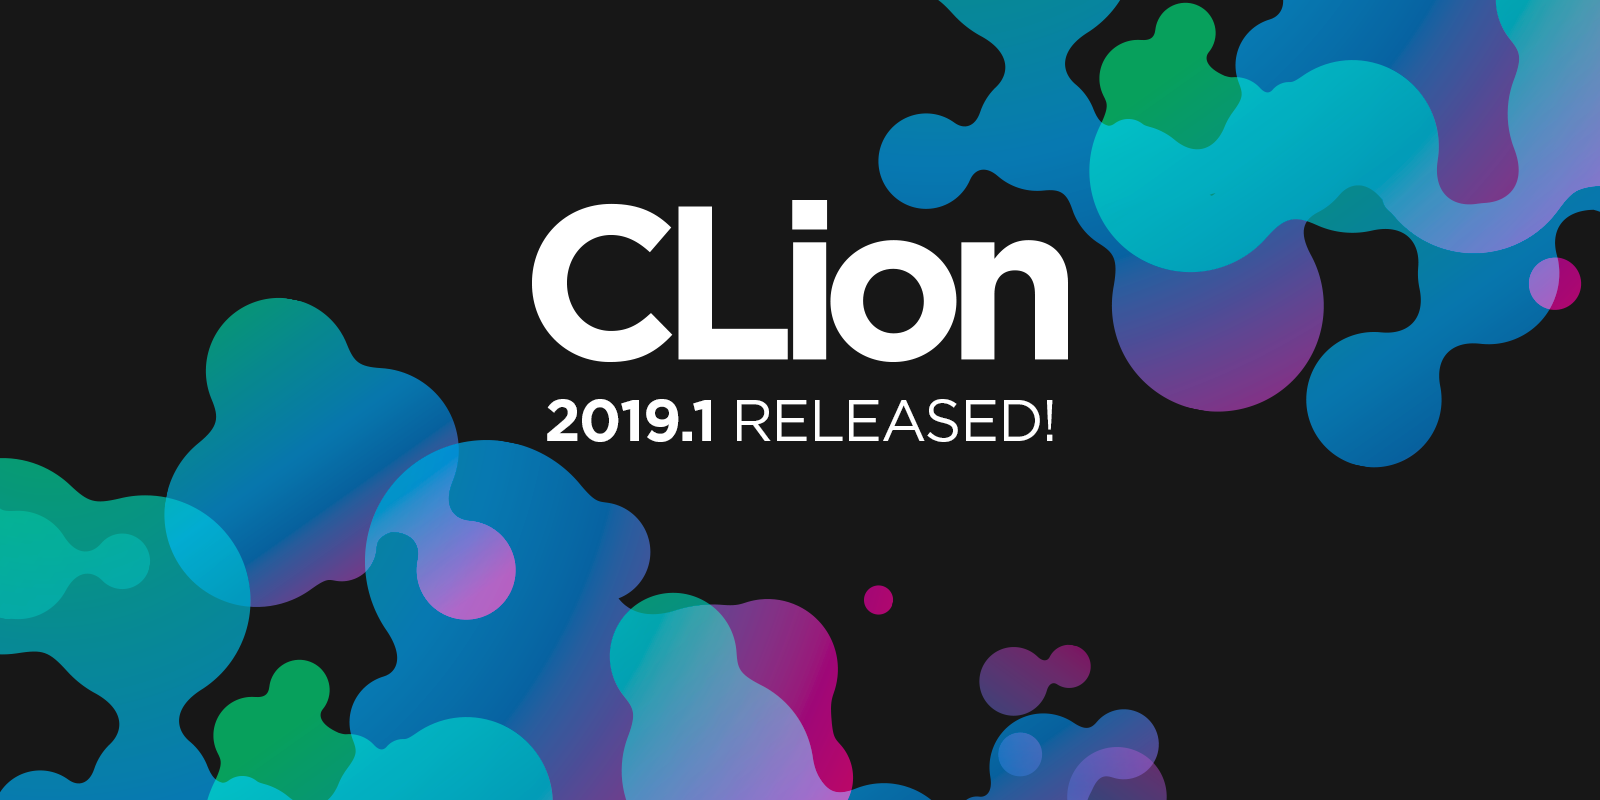 CLion 2019.1 released!